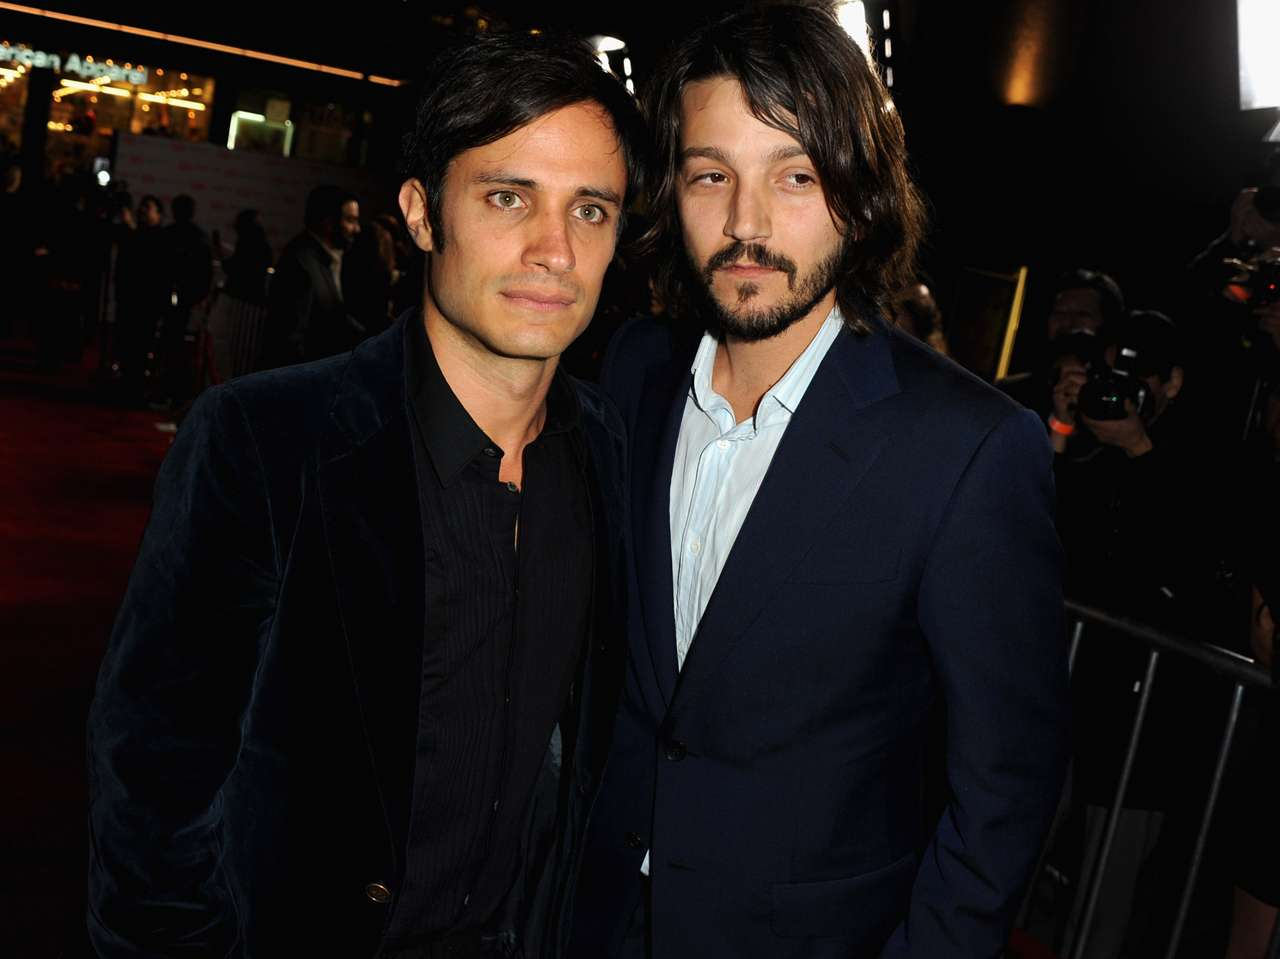 Gael García Bernal y Diego Luna. Foto: Getty Images